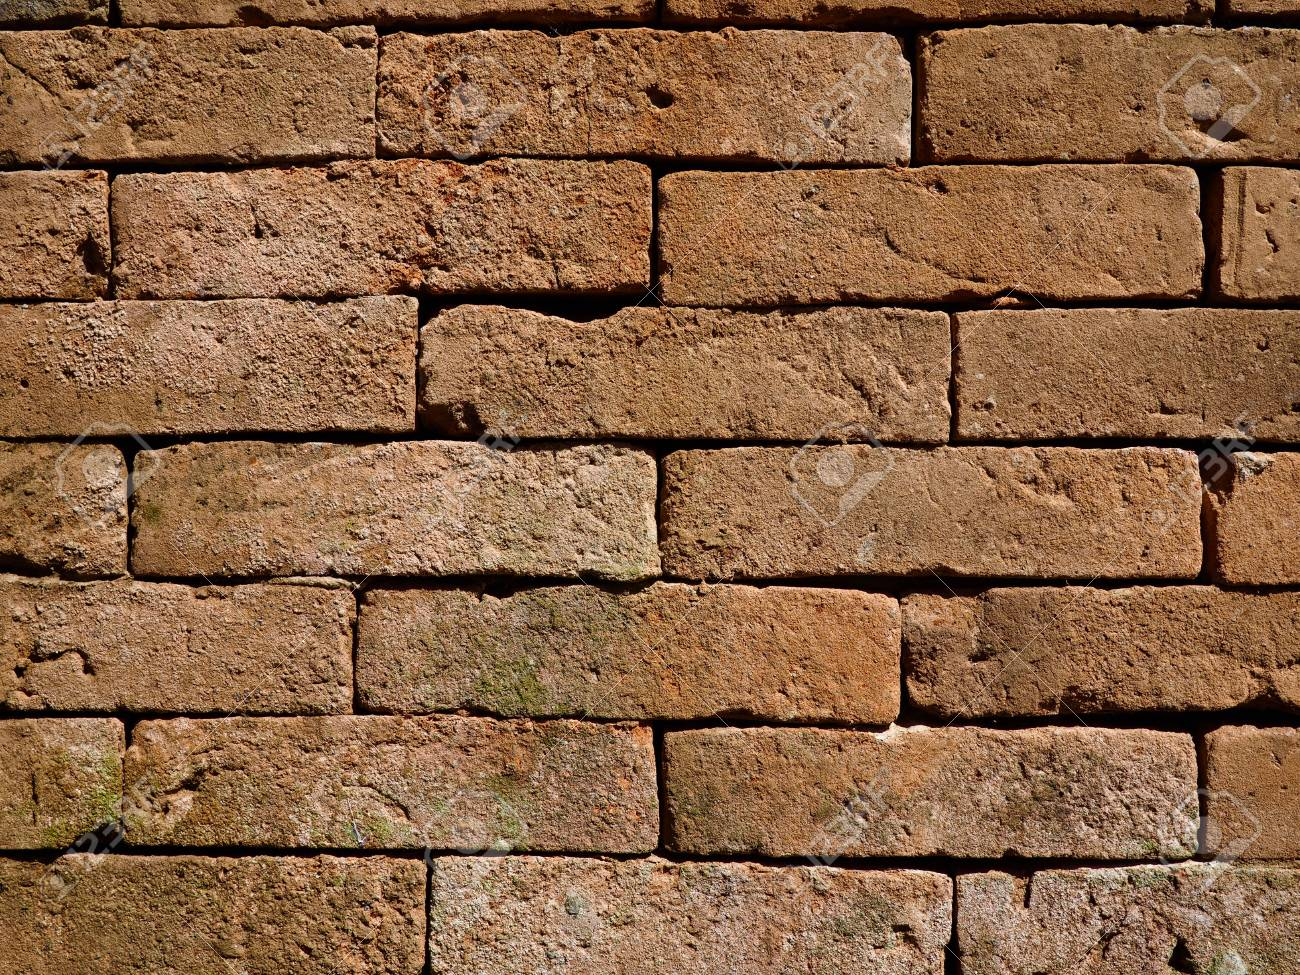 Brick Wall Built With No Mortar Forming A Textured Background